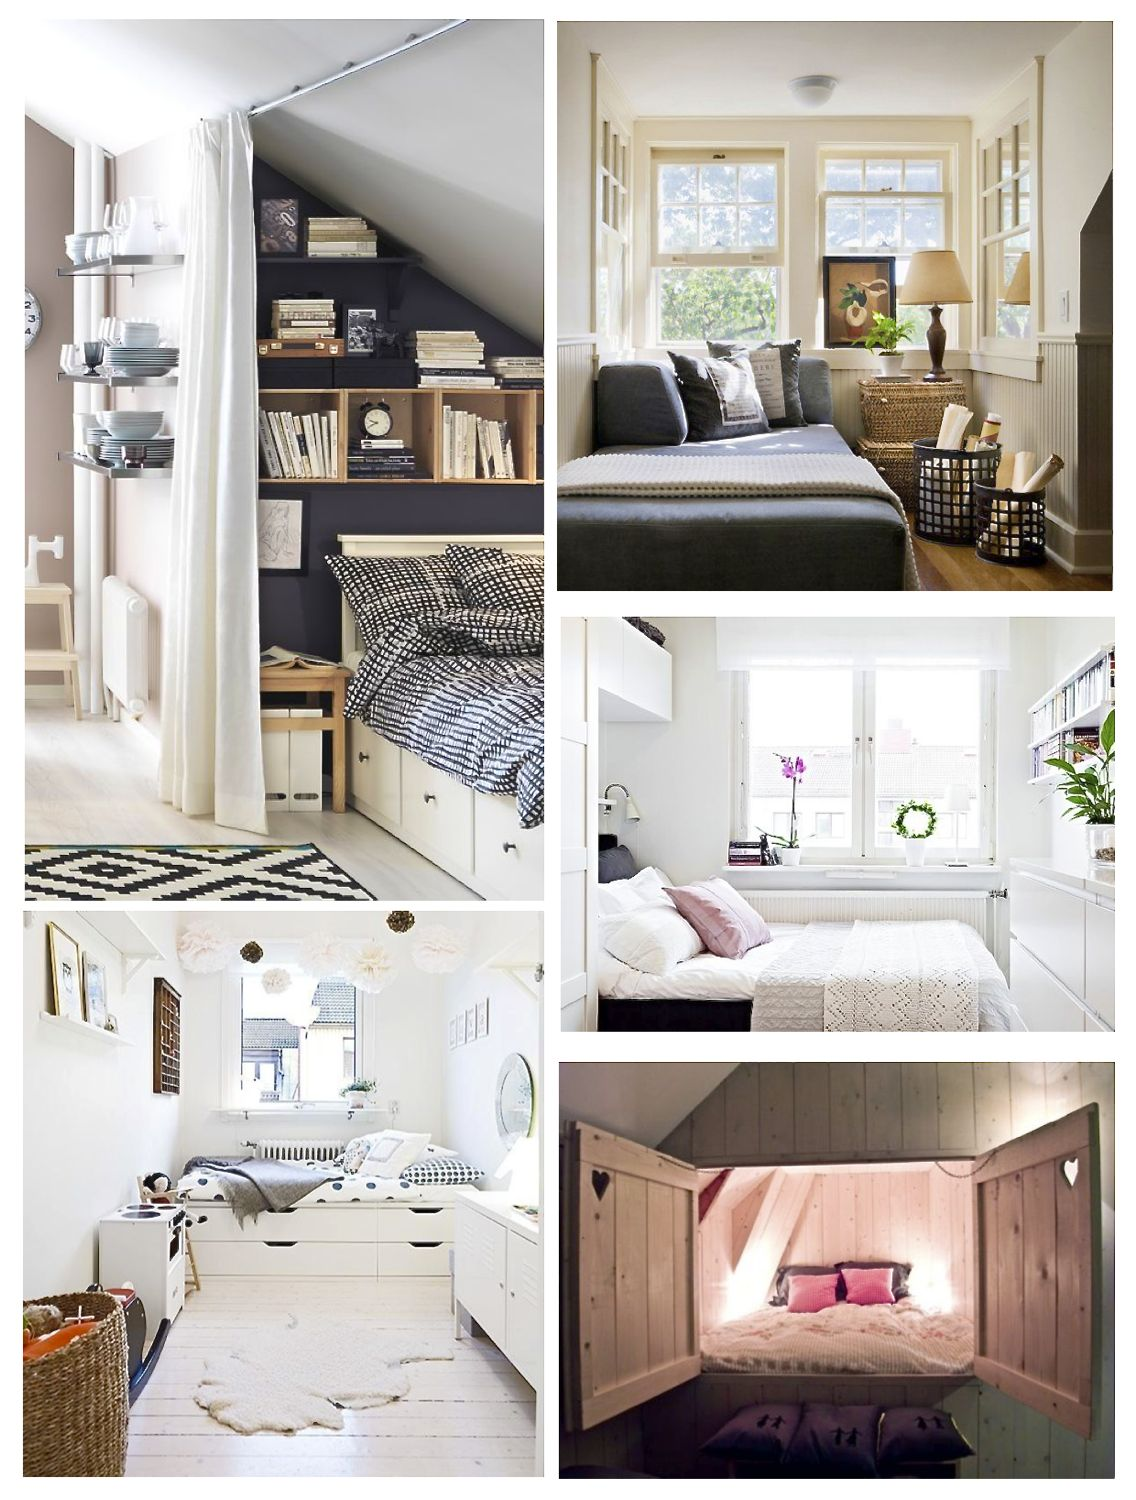 13 Small Bedroom Ideas - Style Barista on Girls Bedroom Ideas For Very Small Rooms  id=45311